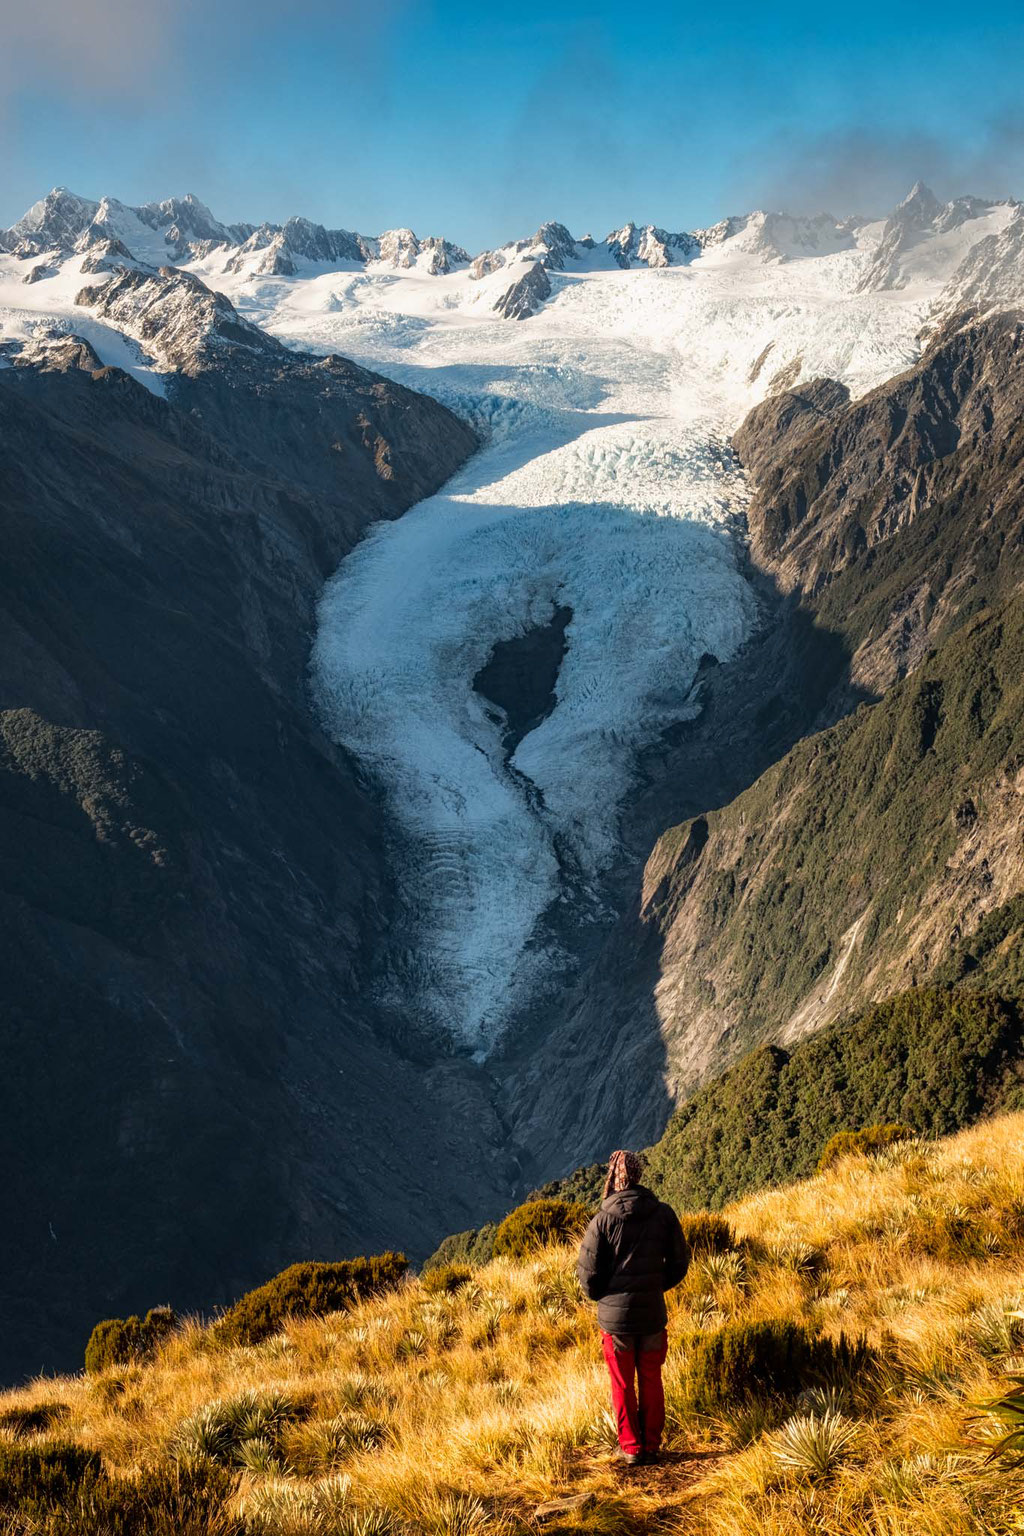 View from the Alex Knob hike over Franz Josef Glacier